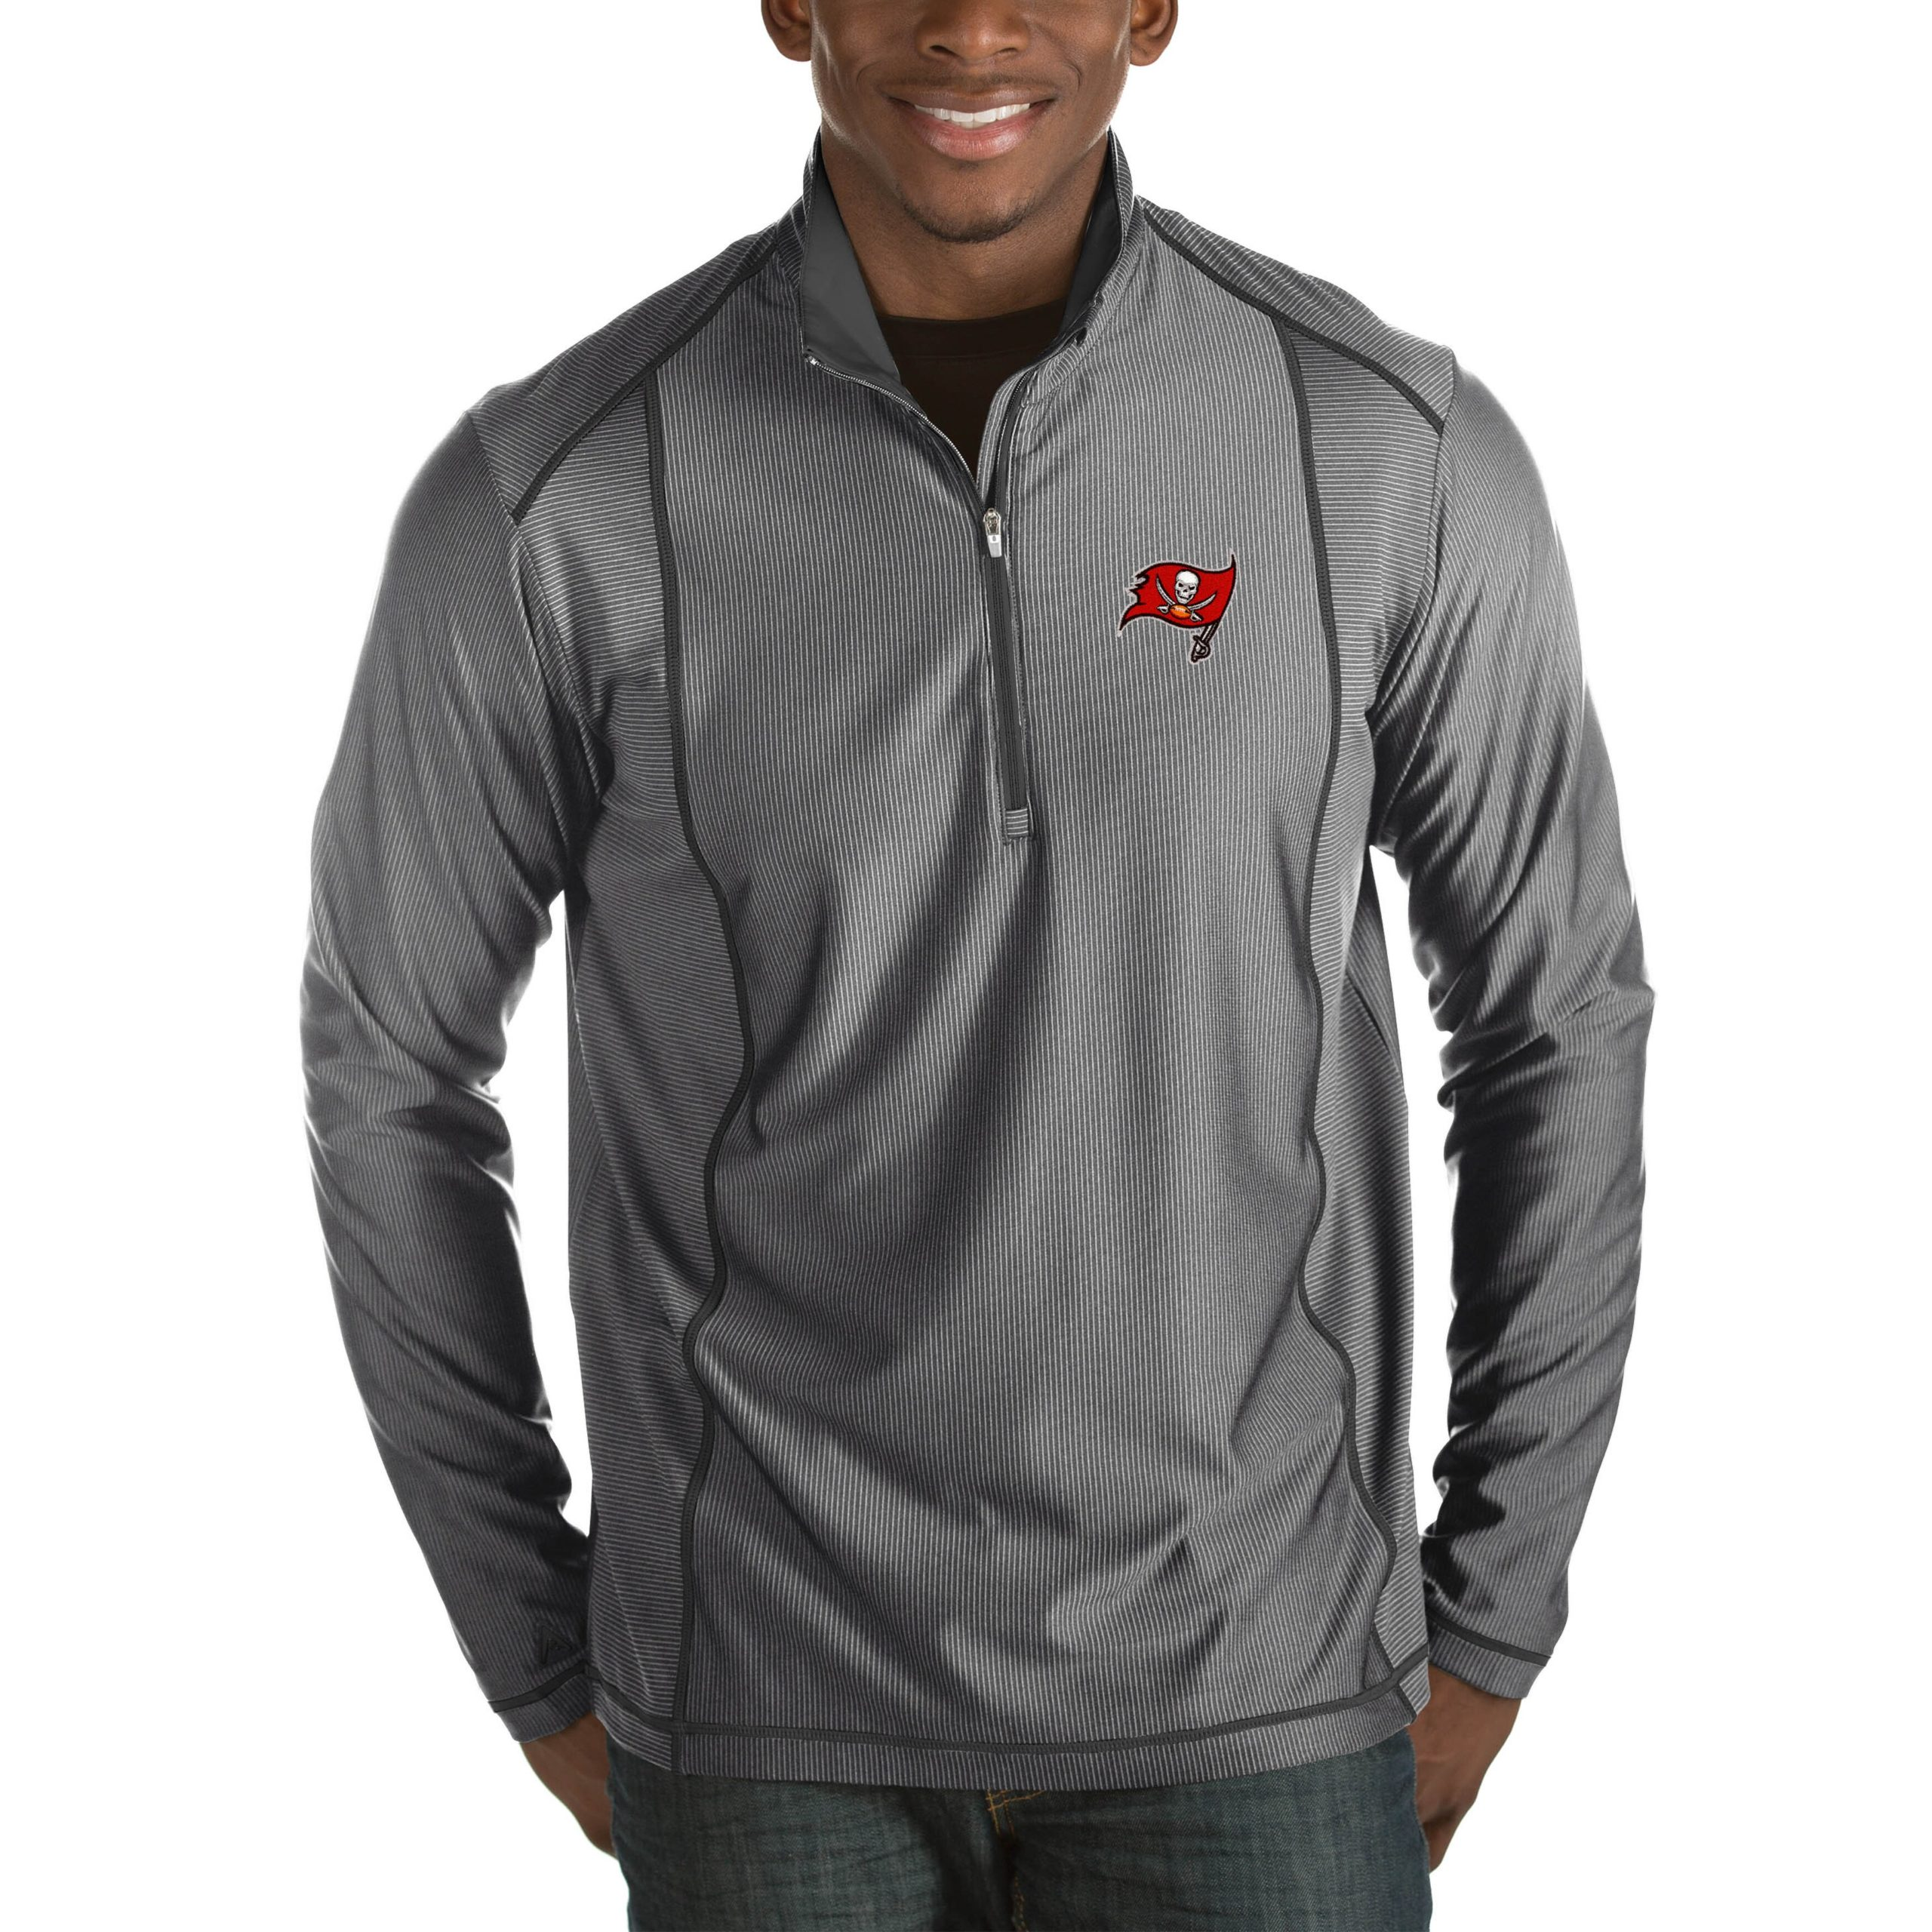 Tampa Bay Buccaneers Antigua Tempo Big & Tall Half-Zip Pullover Jacket - Heather Charcoal